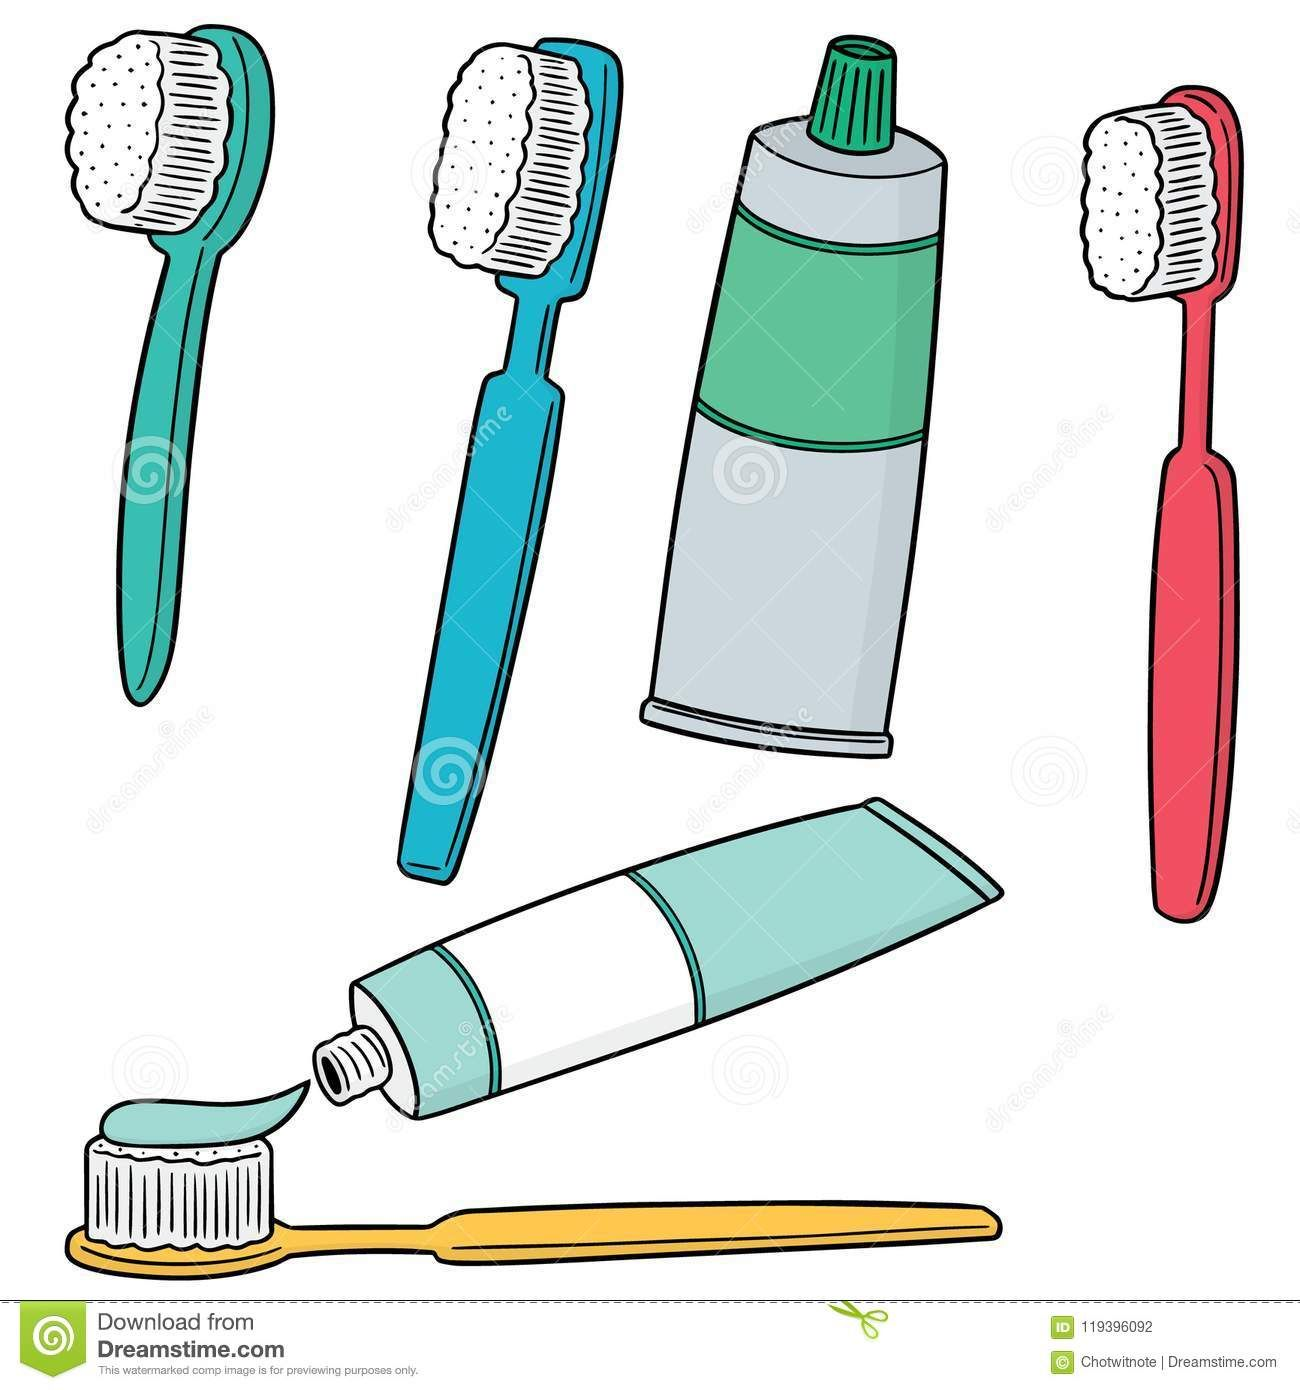 Toothbrush With Toothpaste Icons Royalty Free Vector Image Spon Icons Toothpaste Toothbrush Royalty Ad Vector Free Icon Set Vector Marker Icon